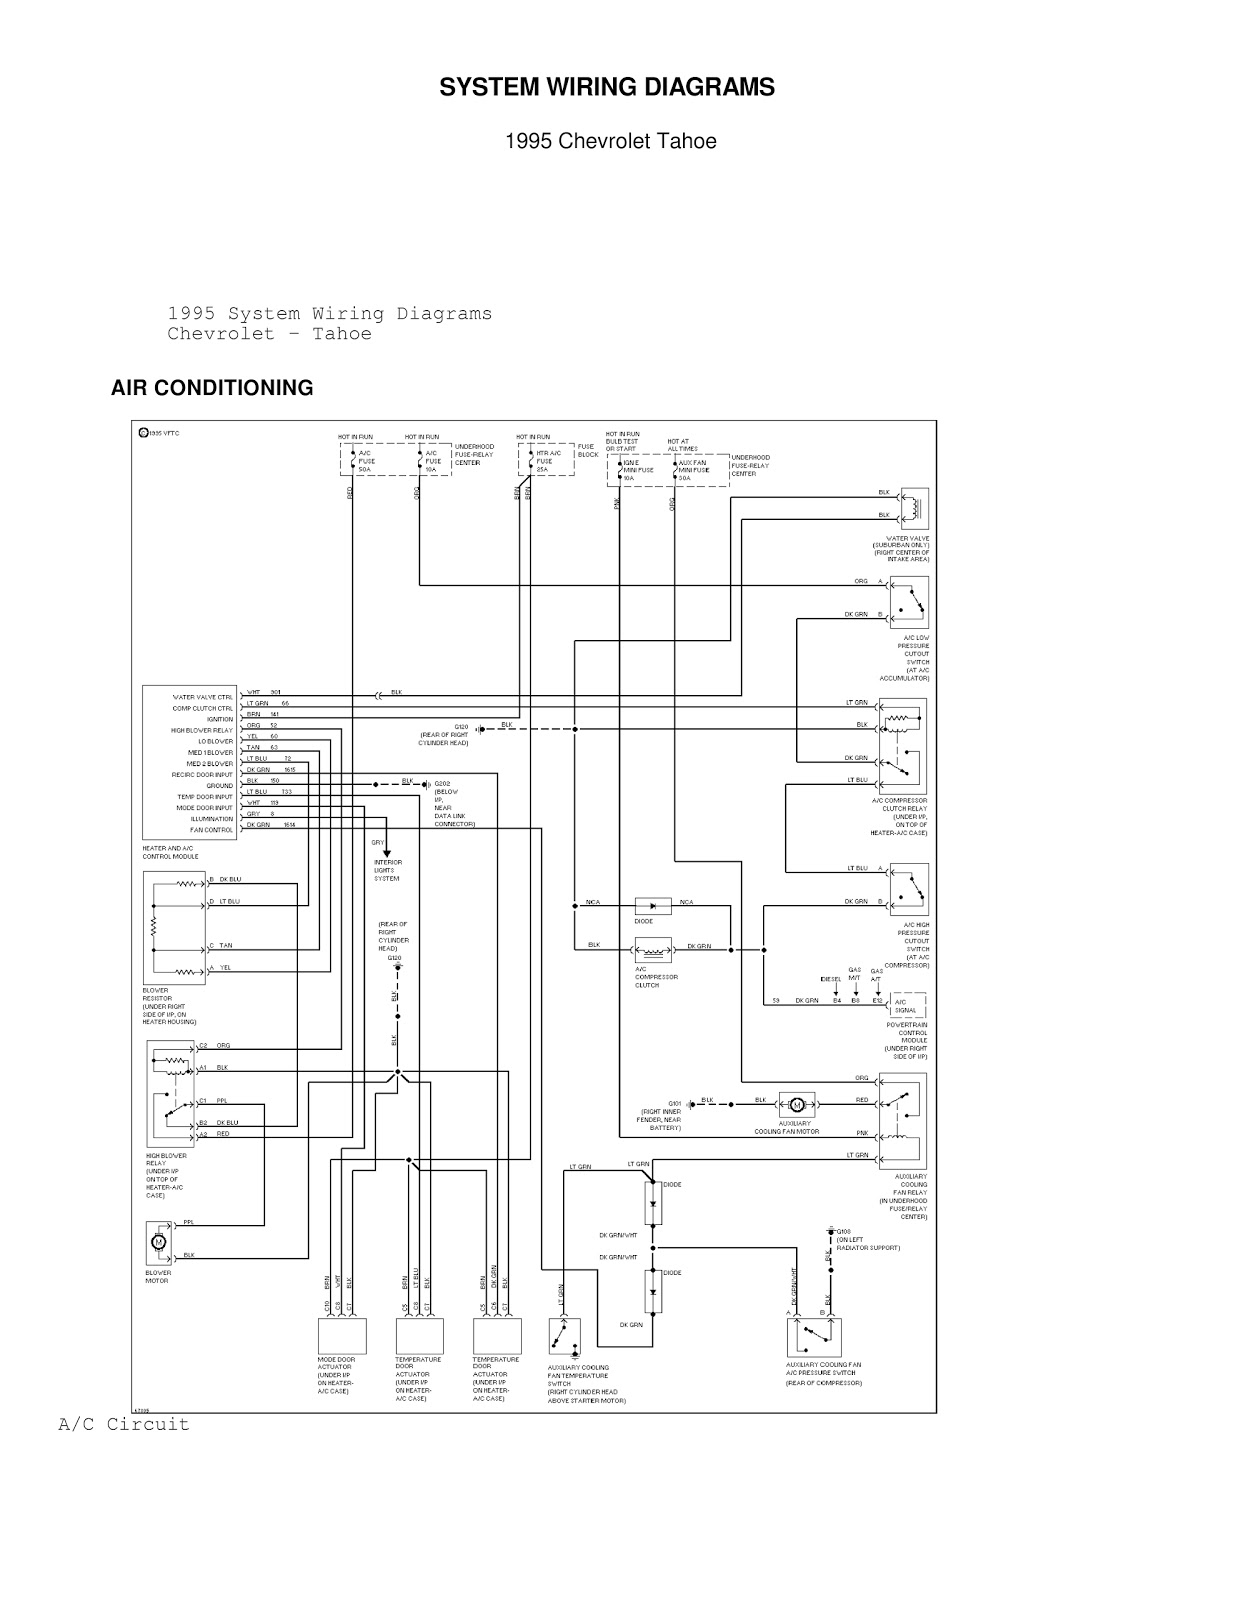 Diagram Chevy Tahoe Wiring Diagram Full Version Hd Quality Wiring Diagram Tybodiagram Cabinet Accordance Fr